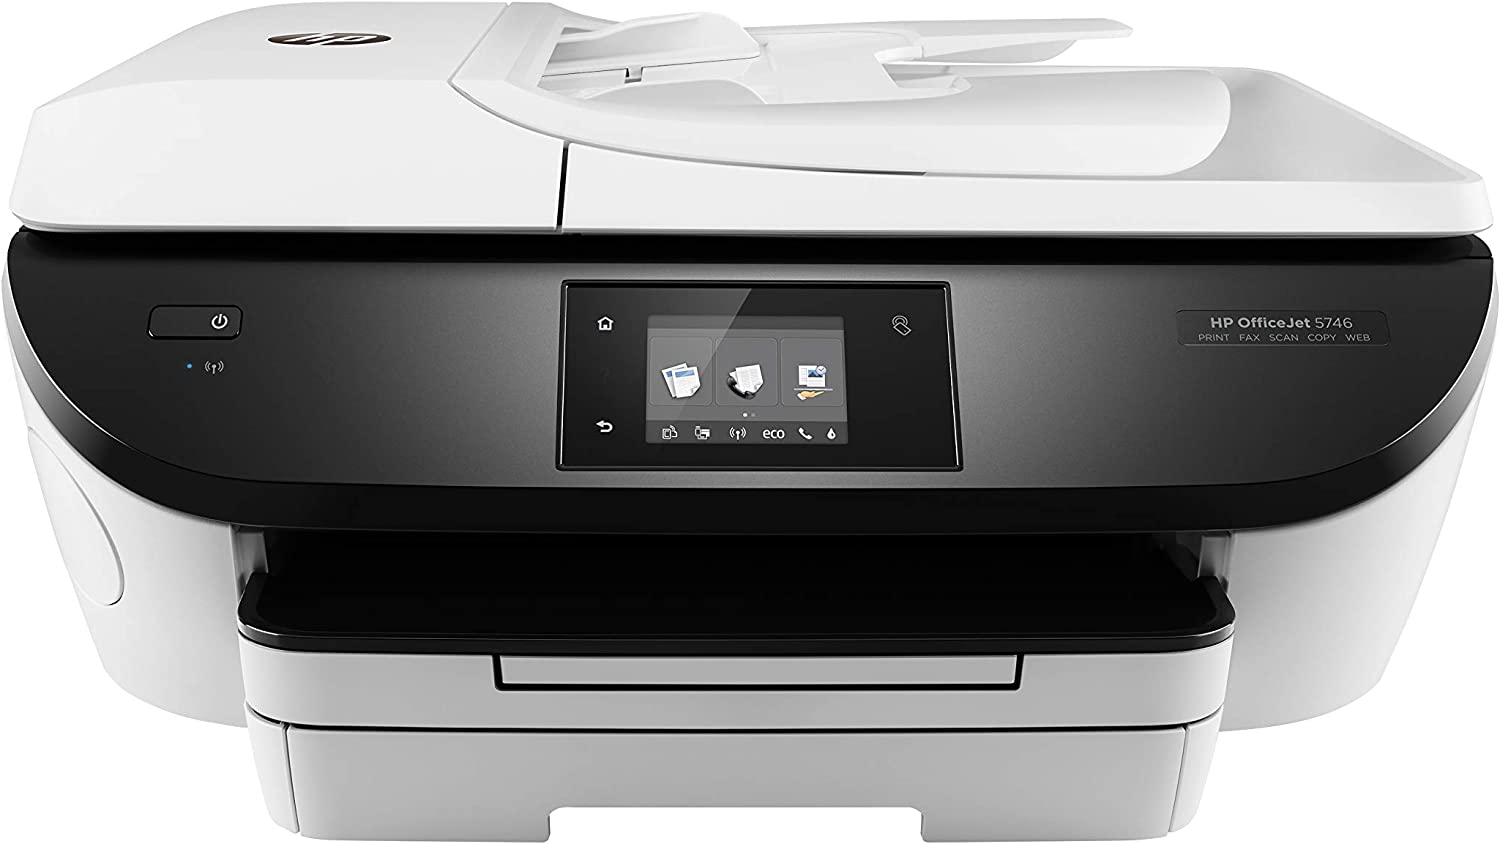 HP OfficeJet 5746 All-in-One Printer, White (Refurbished)